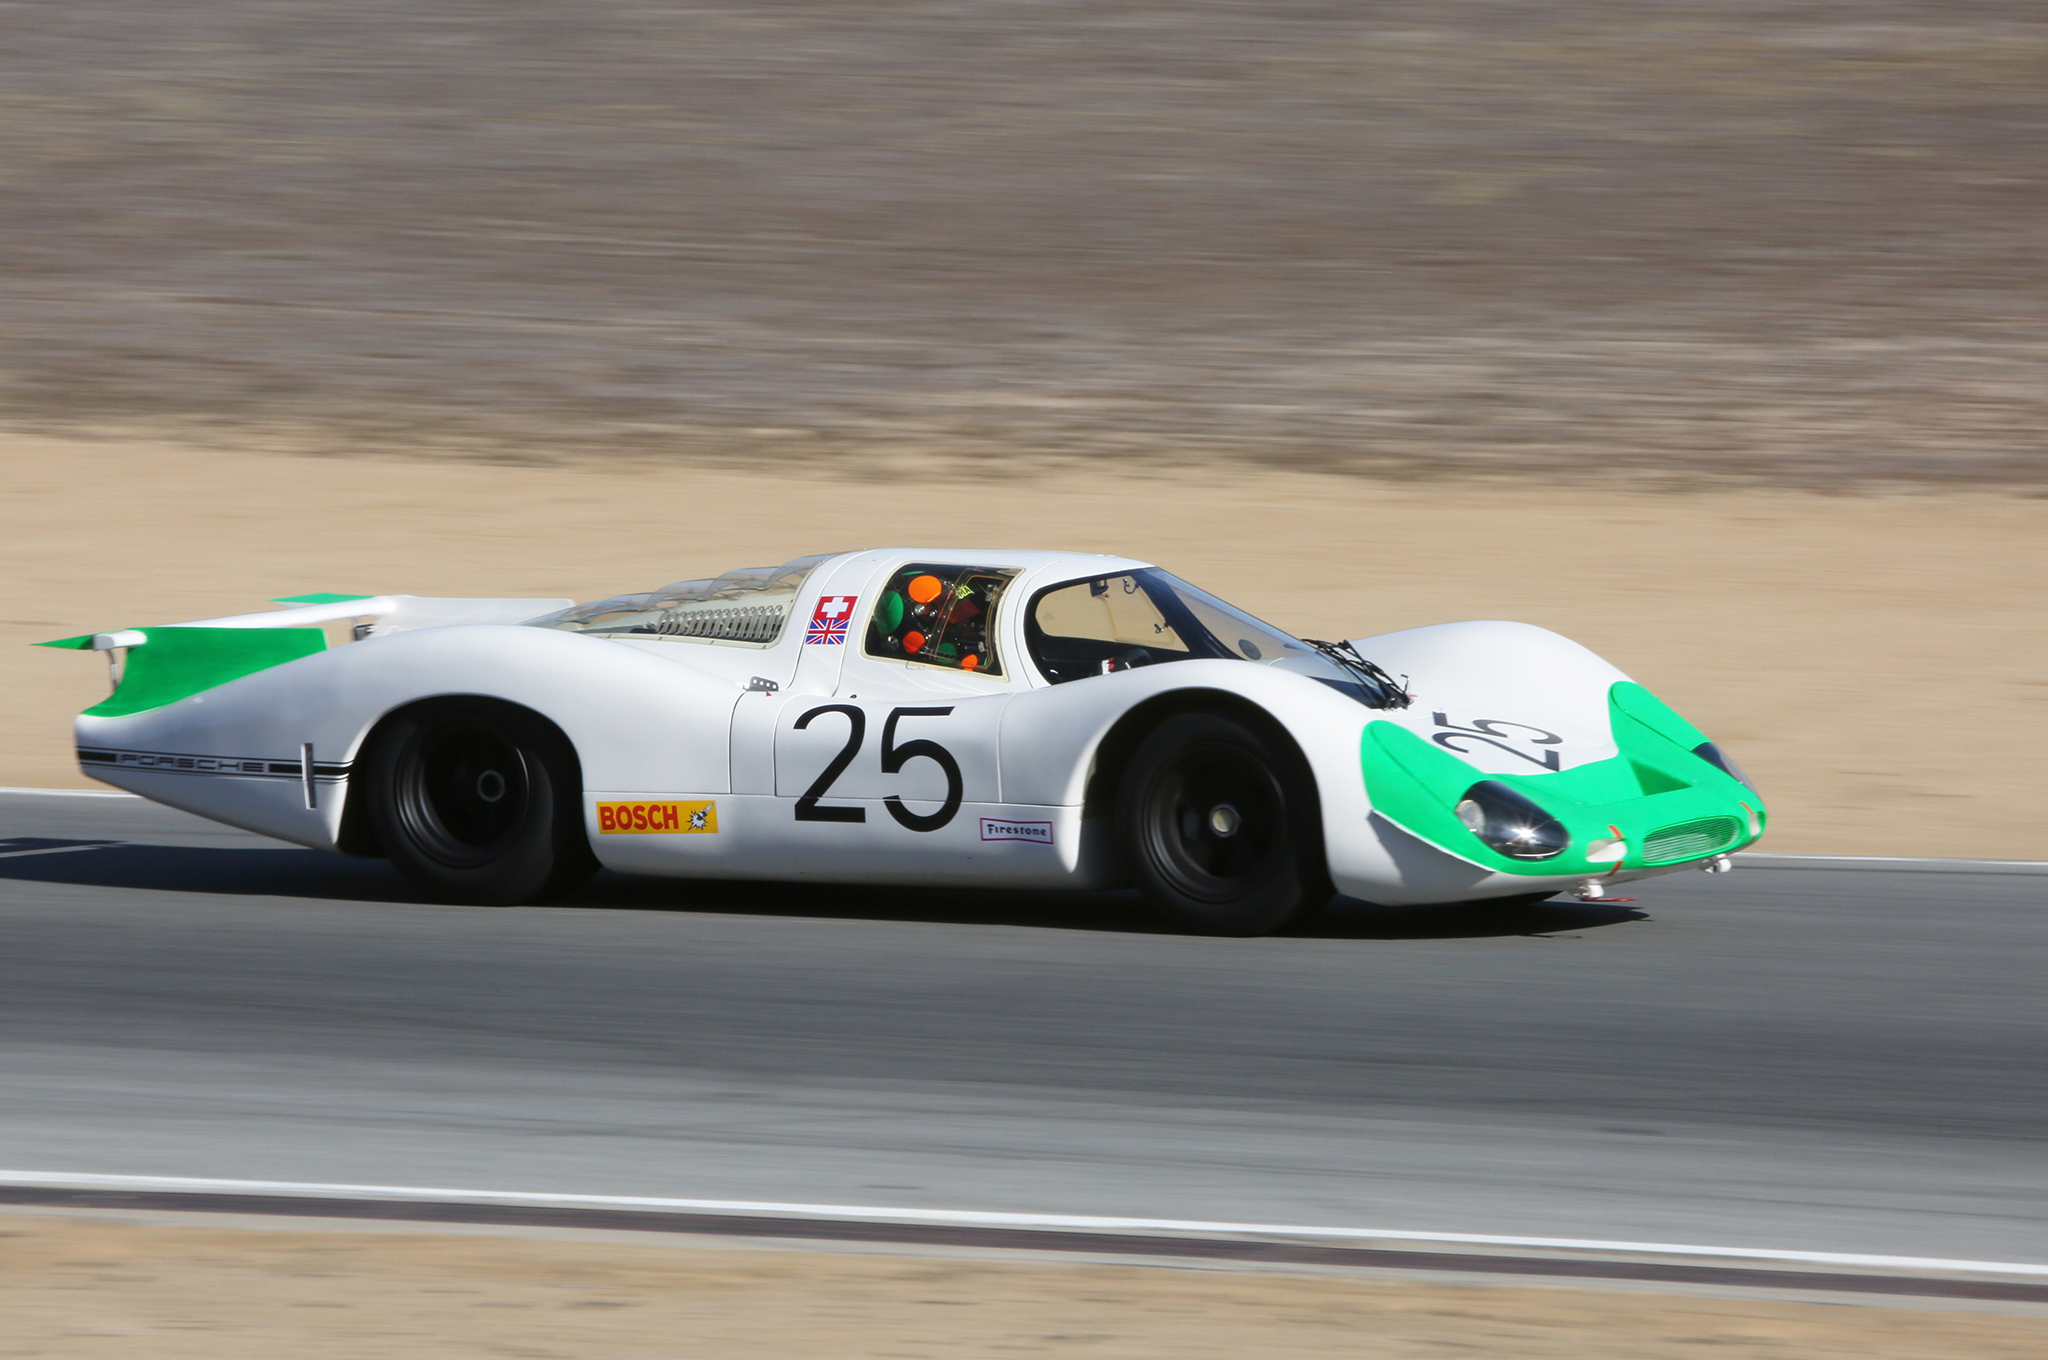 20. The Revs Institute brought this 1969 Porsche 908 LH, driven by Gunnar Jeannette.